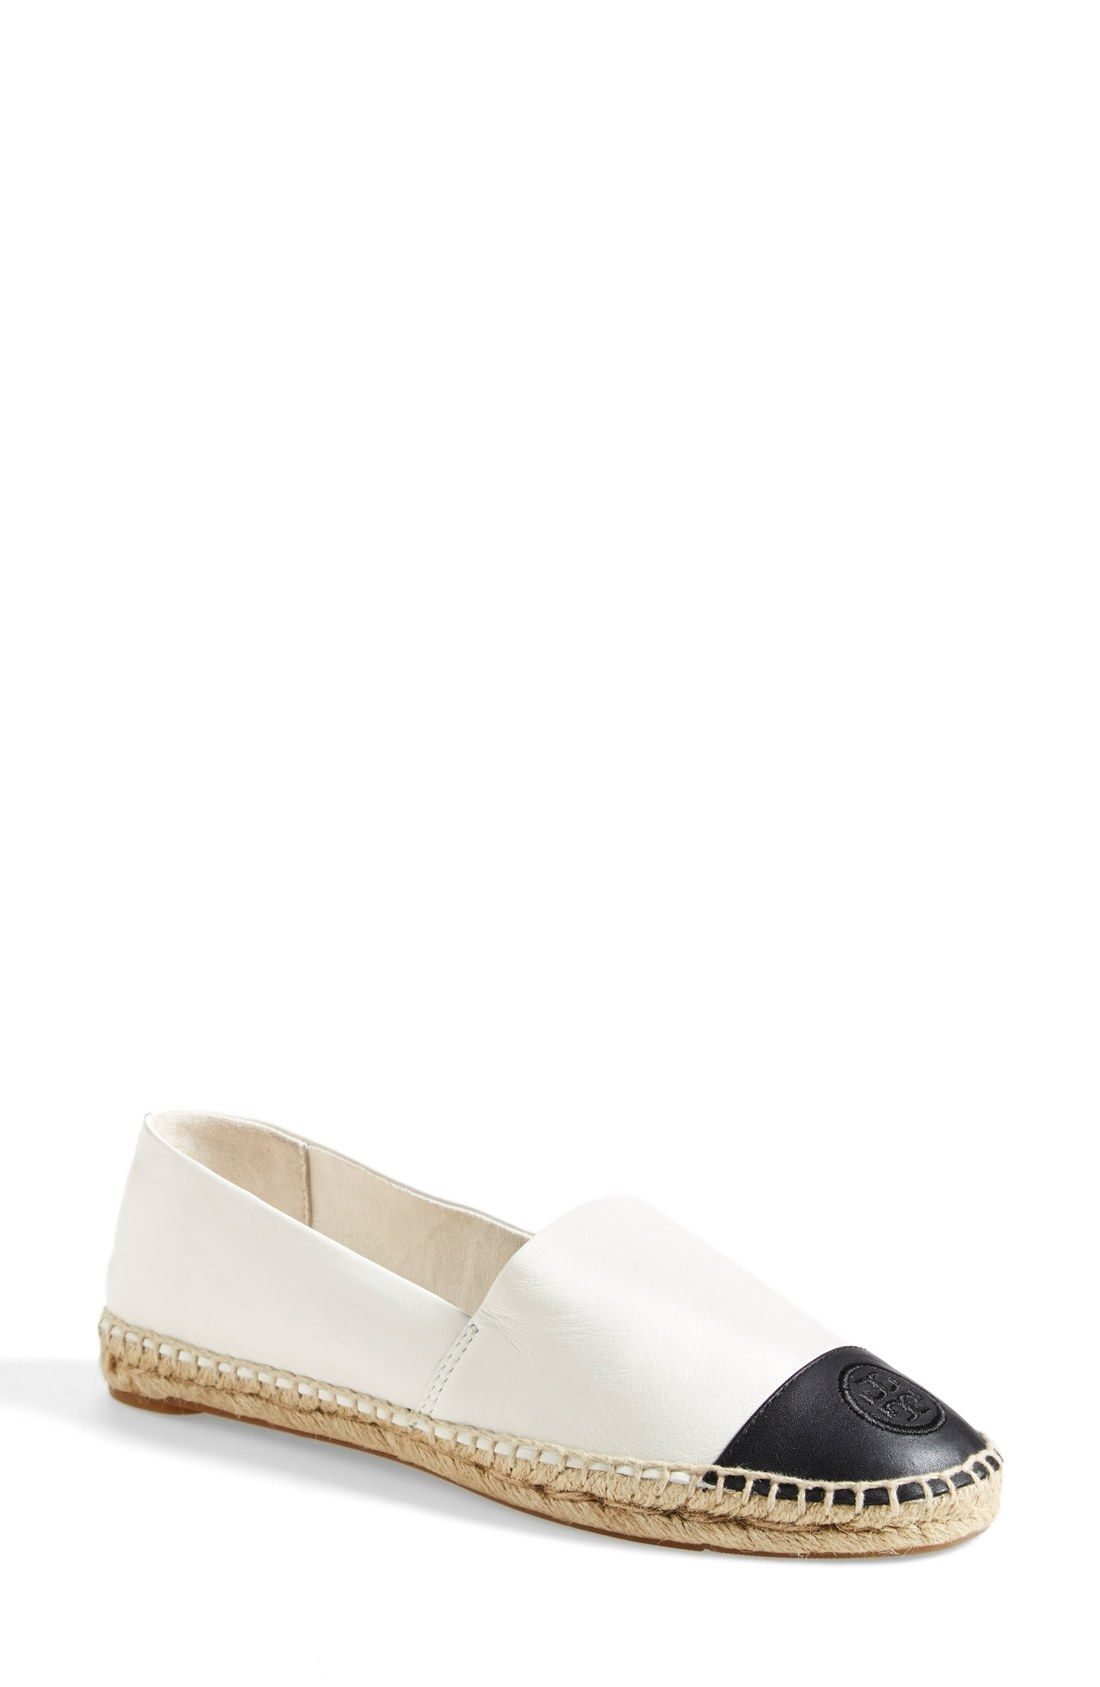 5bb1522e5 A raised Tory Burch logo lends signature polish to this colorblocked  espadrille with a crackled metallic-leather finish and a jute-trimmed sole.